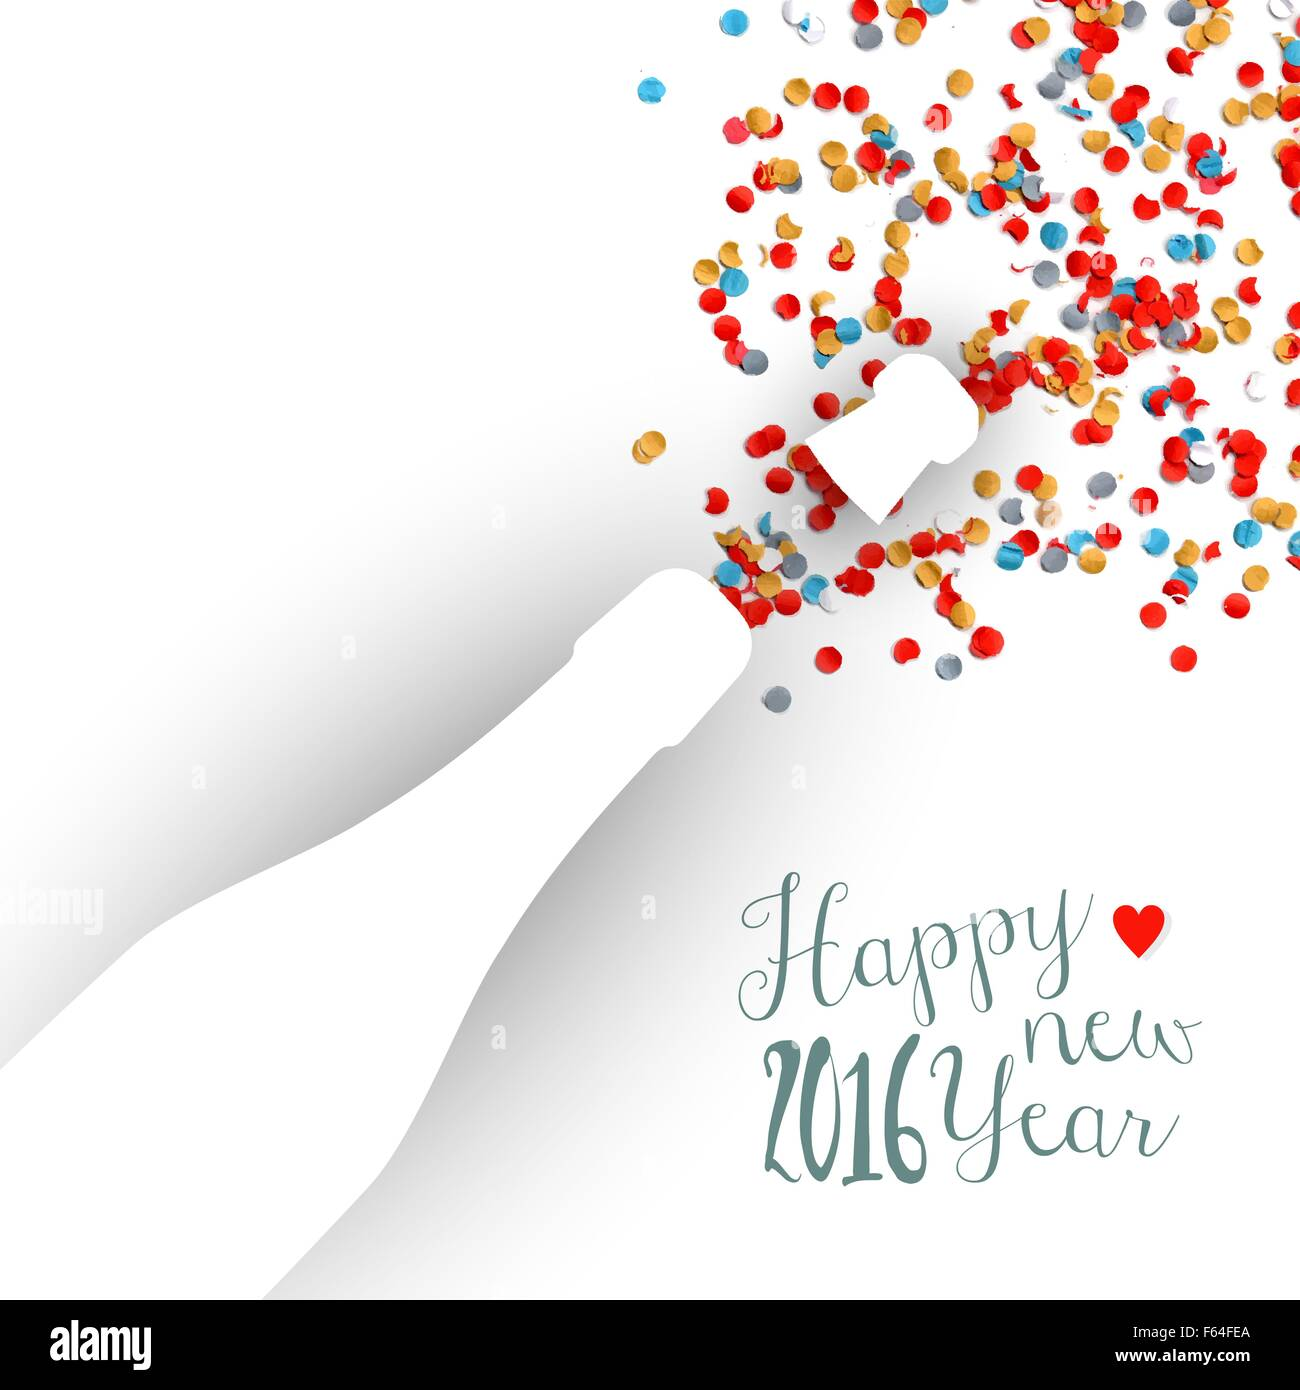 happy new year eve 2016 colorful celebration champagne bottle and confetti background ideal for holiday greeting card or party